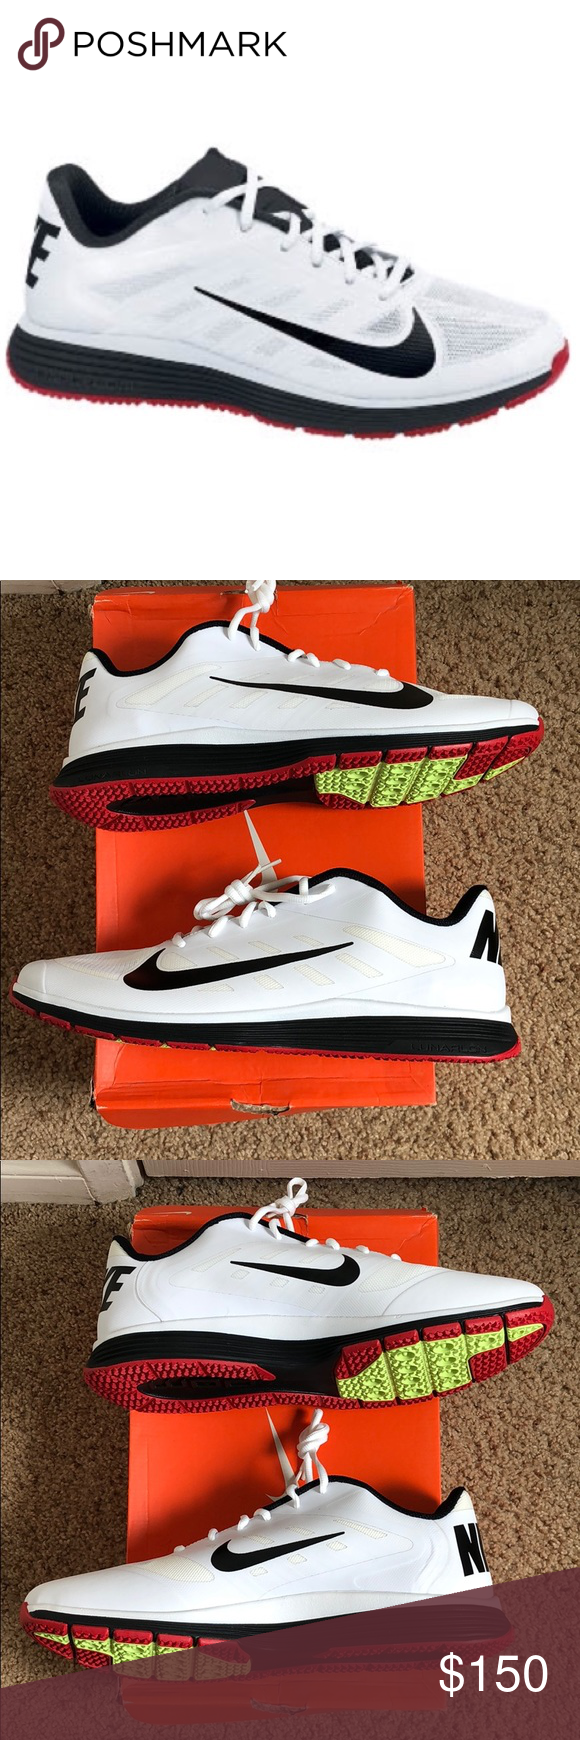 low priced a2312 c1fd9 Nike Lunar Vapor Trainer in University Red Nike Lunar Vapor Trainer in White  Black